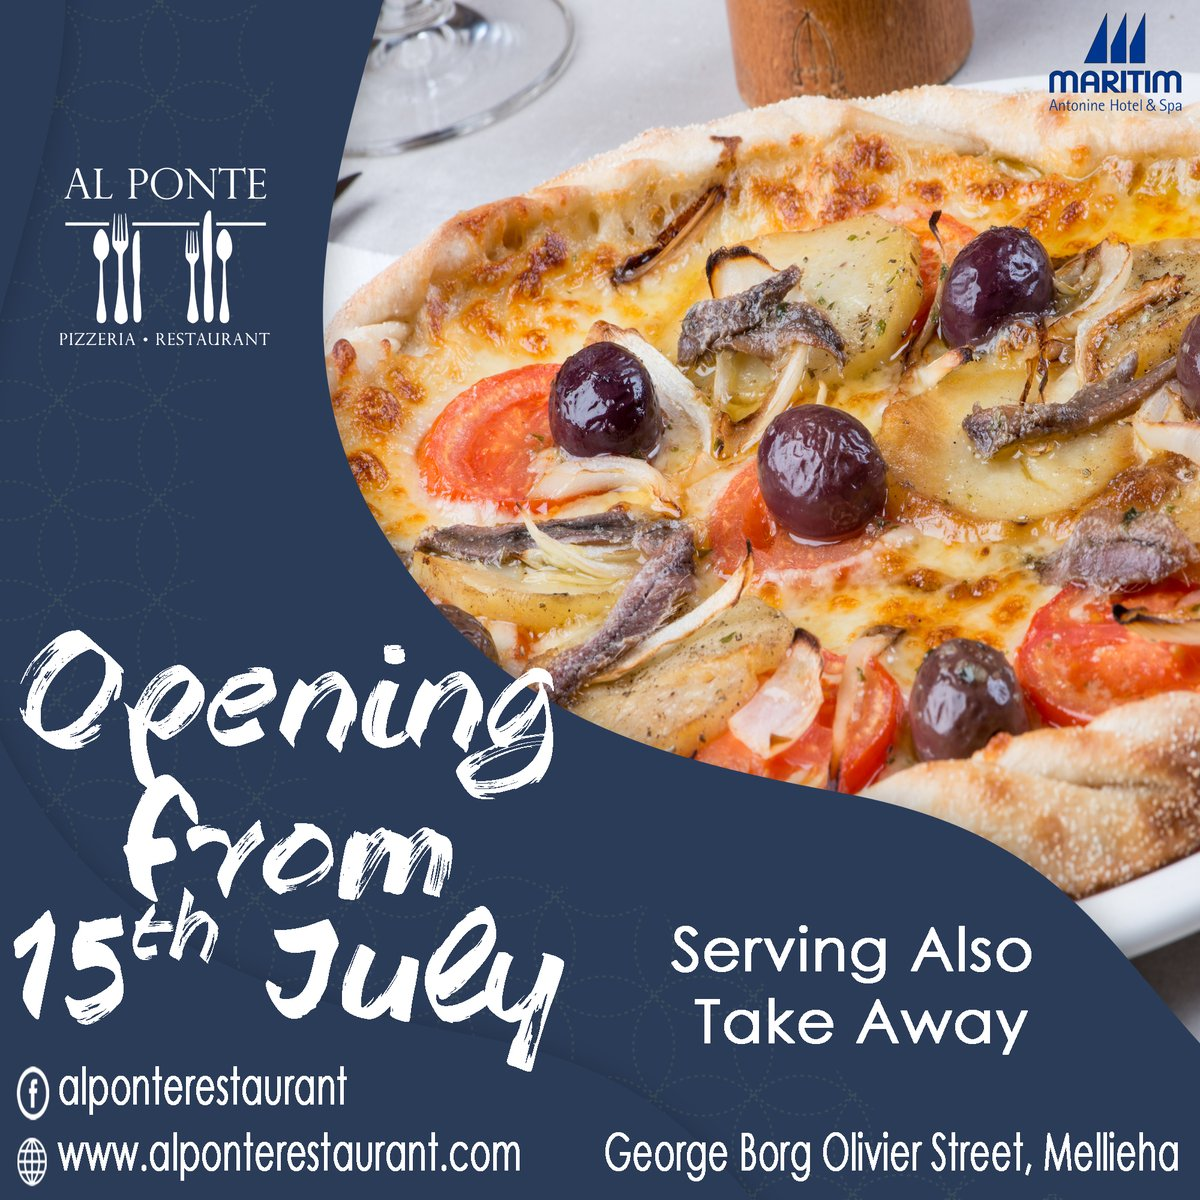 After the rough times, the sun is shining and we are eagerly looking forward to hosting you at Al Ponte Pizzeria & Restaurant.  We are all set to welcome you as from the 15th of July.  Government Vouchers will be accepted.  #reopening #alponte #takeaway #maritimmalta #vouchers https://t.co/uayBe5PdmP